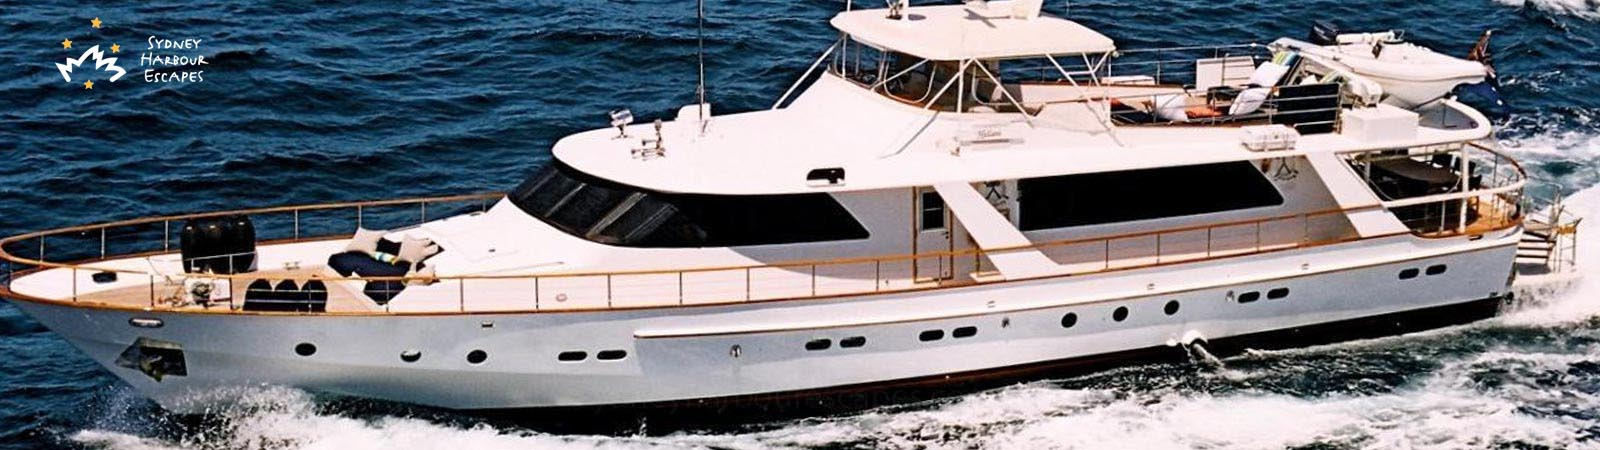 Hiilani boat private charter